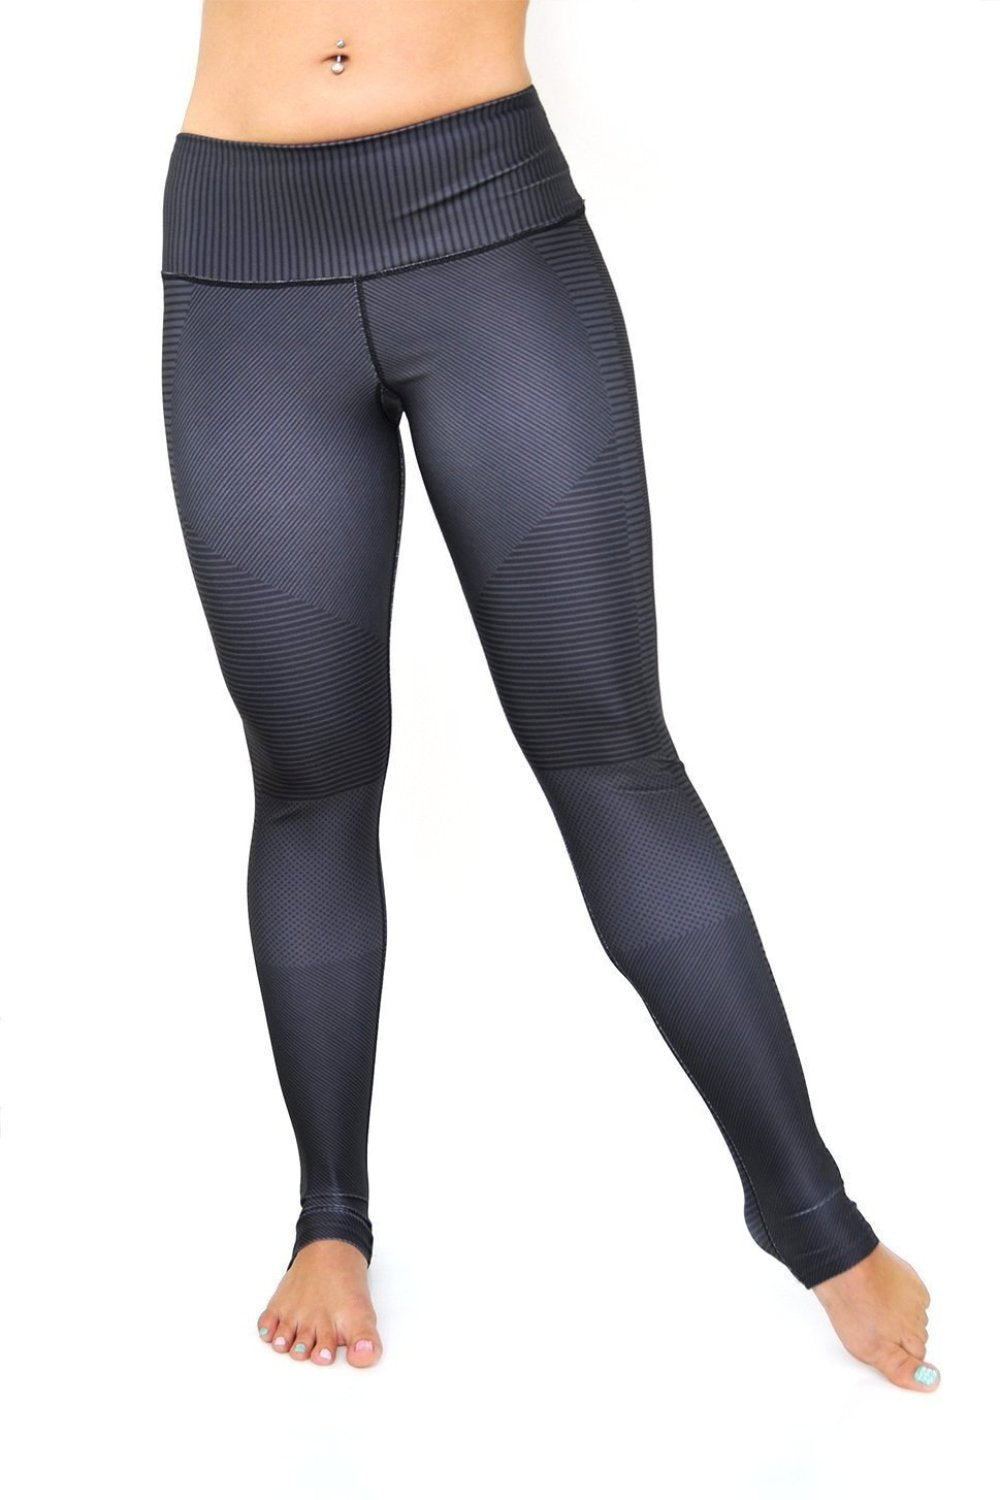 High waisted moto pattern black and grey leggings made with eco friendly fabrics from Inner Fire. Luxe high compression yoga pants from Uniquely Yoga. Front View